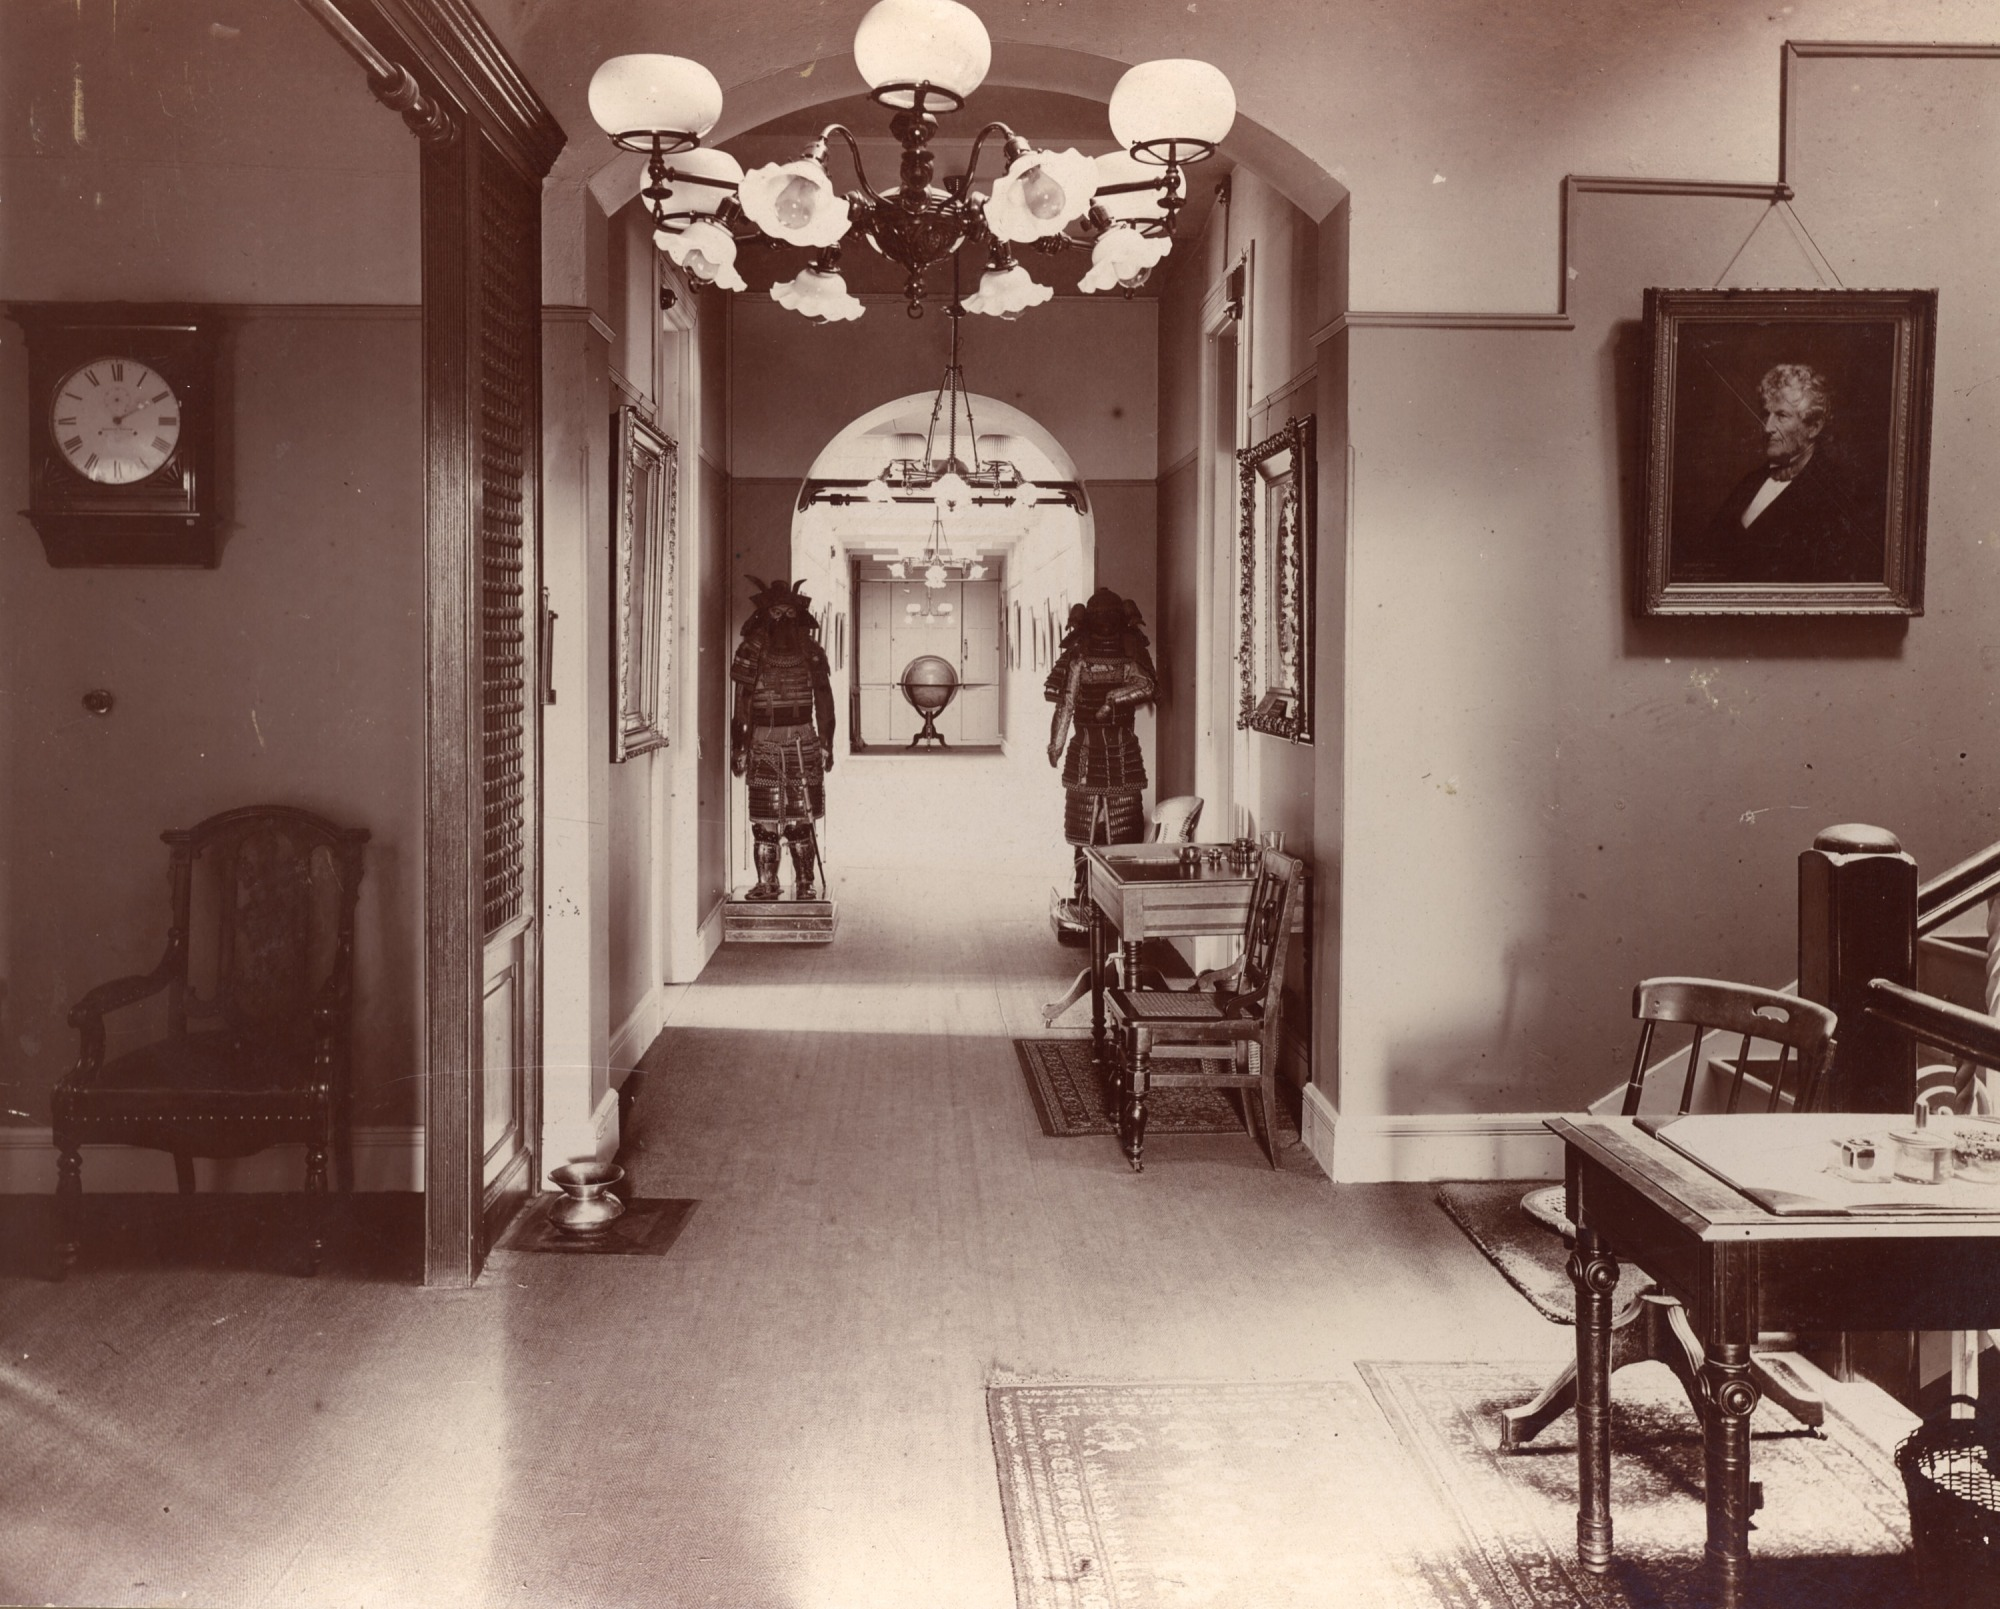 images for Smithsonian Institution Building Hallway